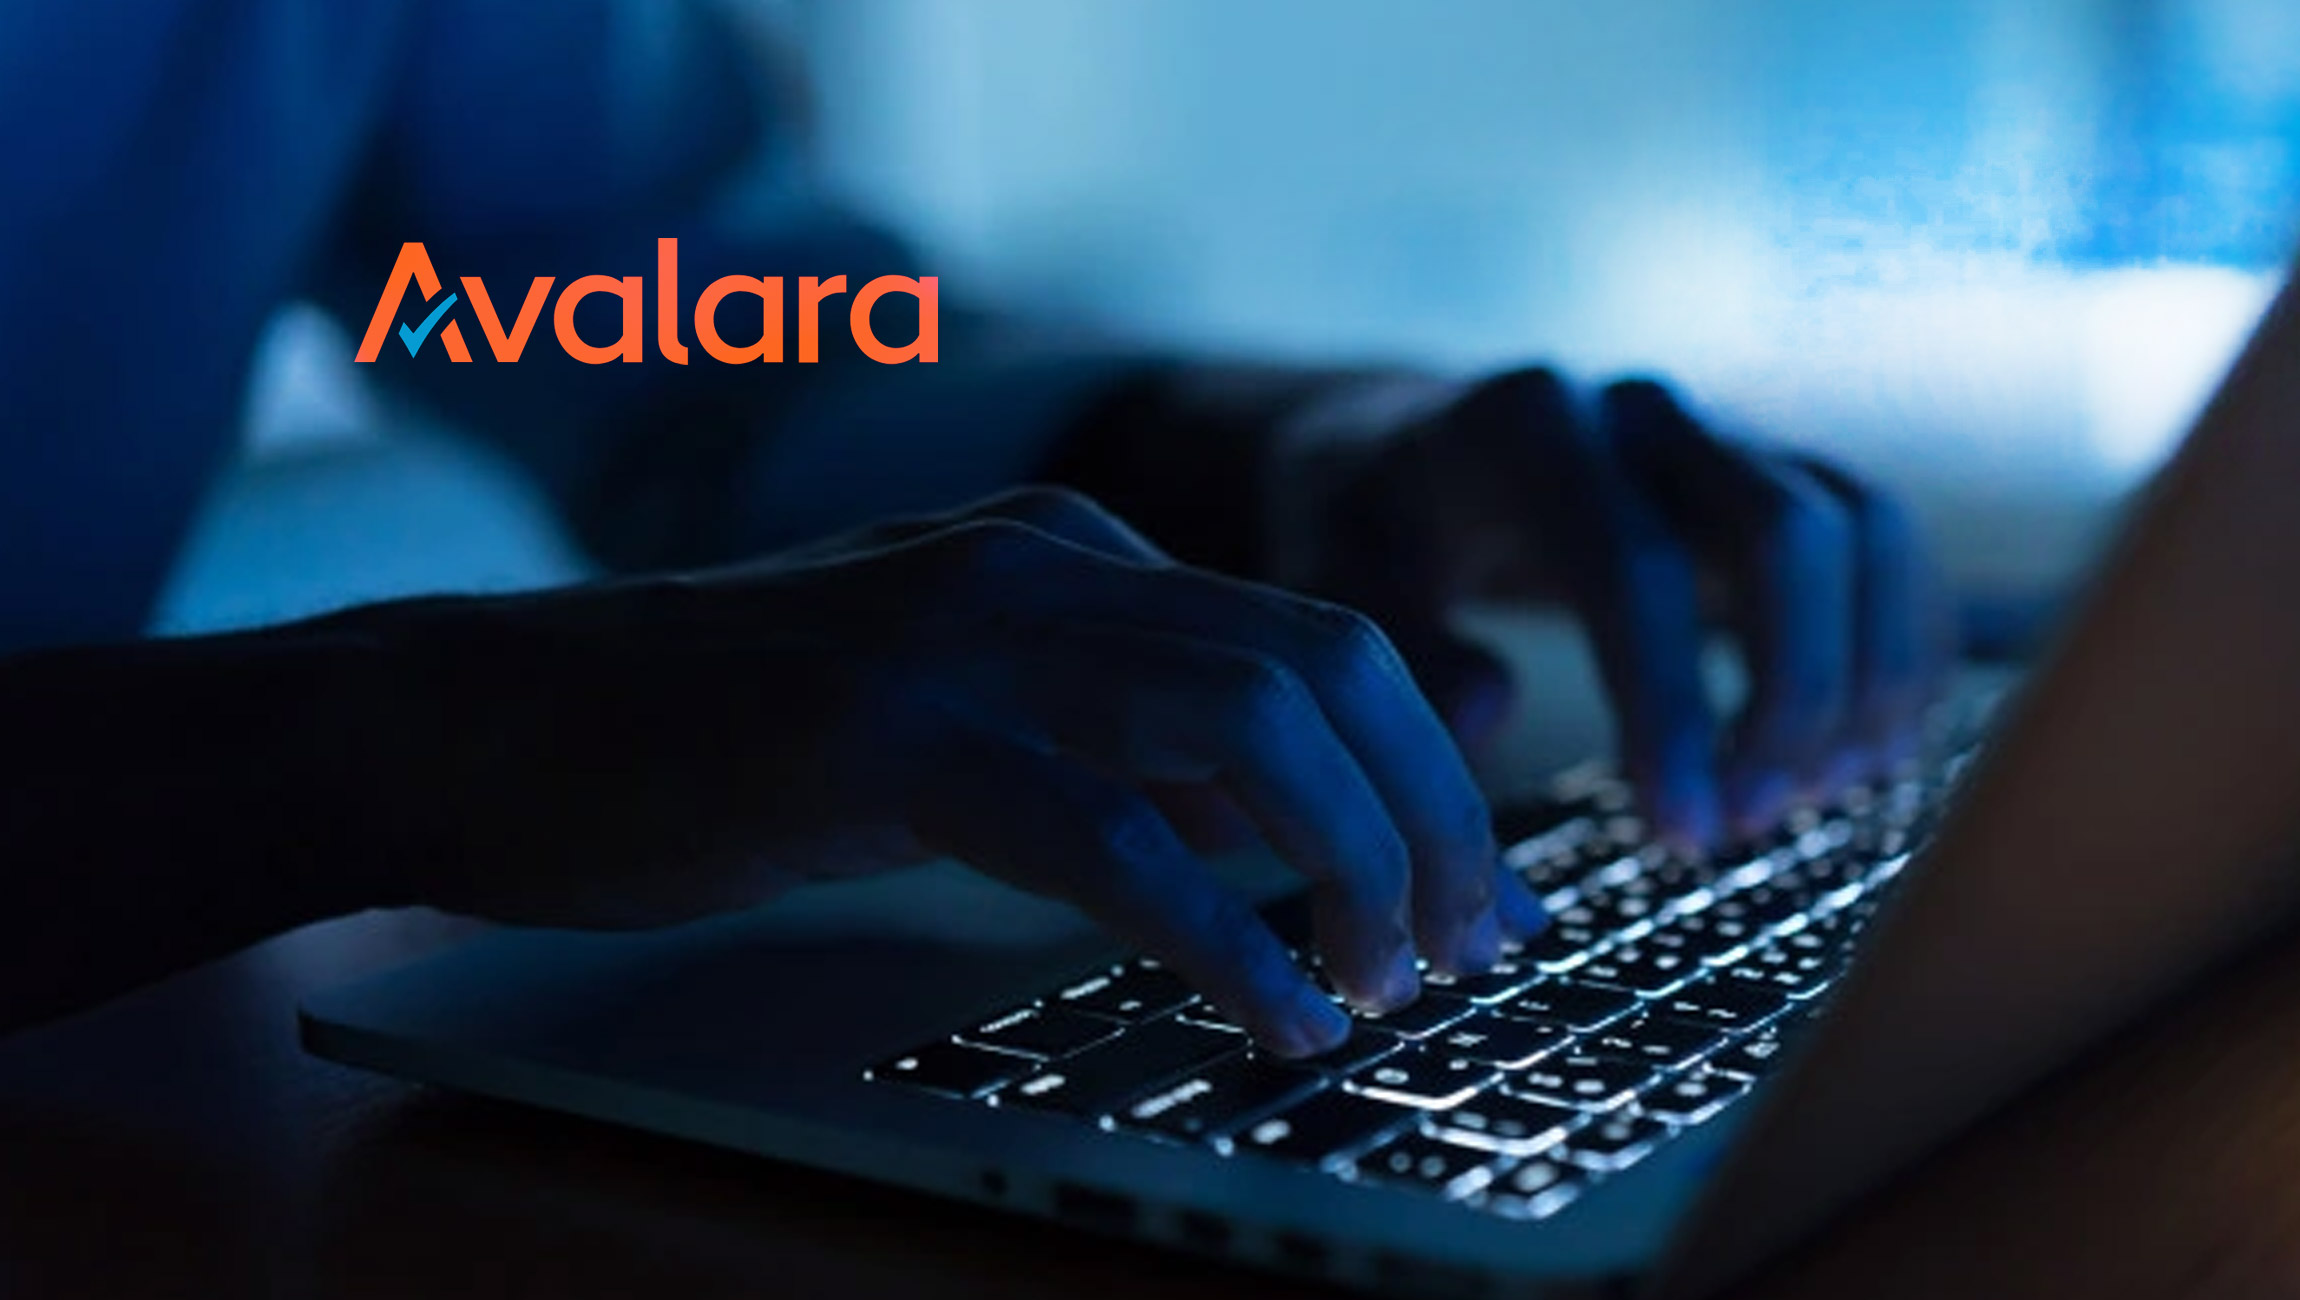 Avalara Enhances VAT Solutions to Enable Global Businesses to Manage VAT Registrations, Calculations, and Reporting